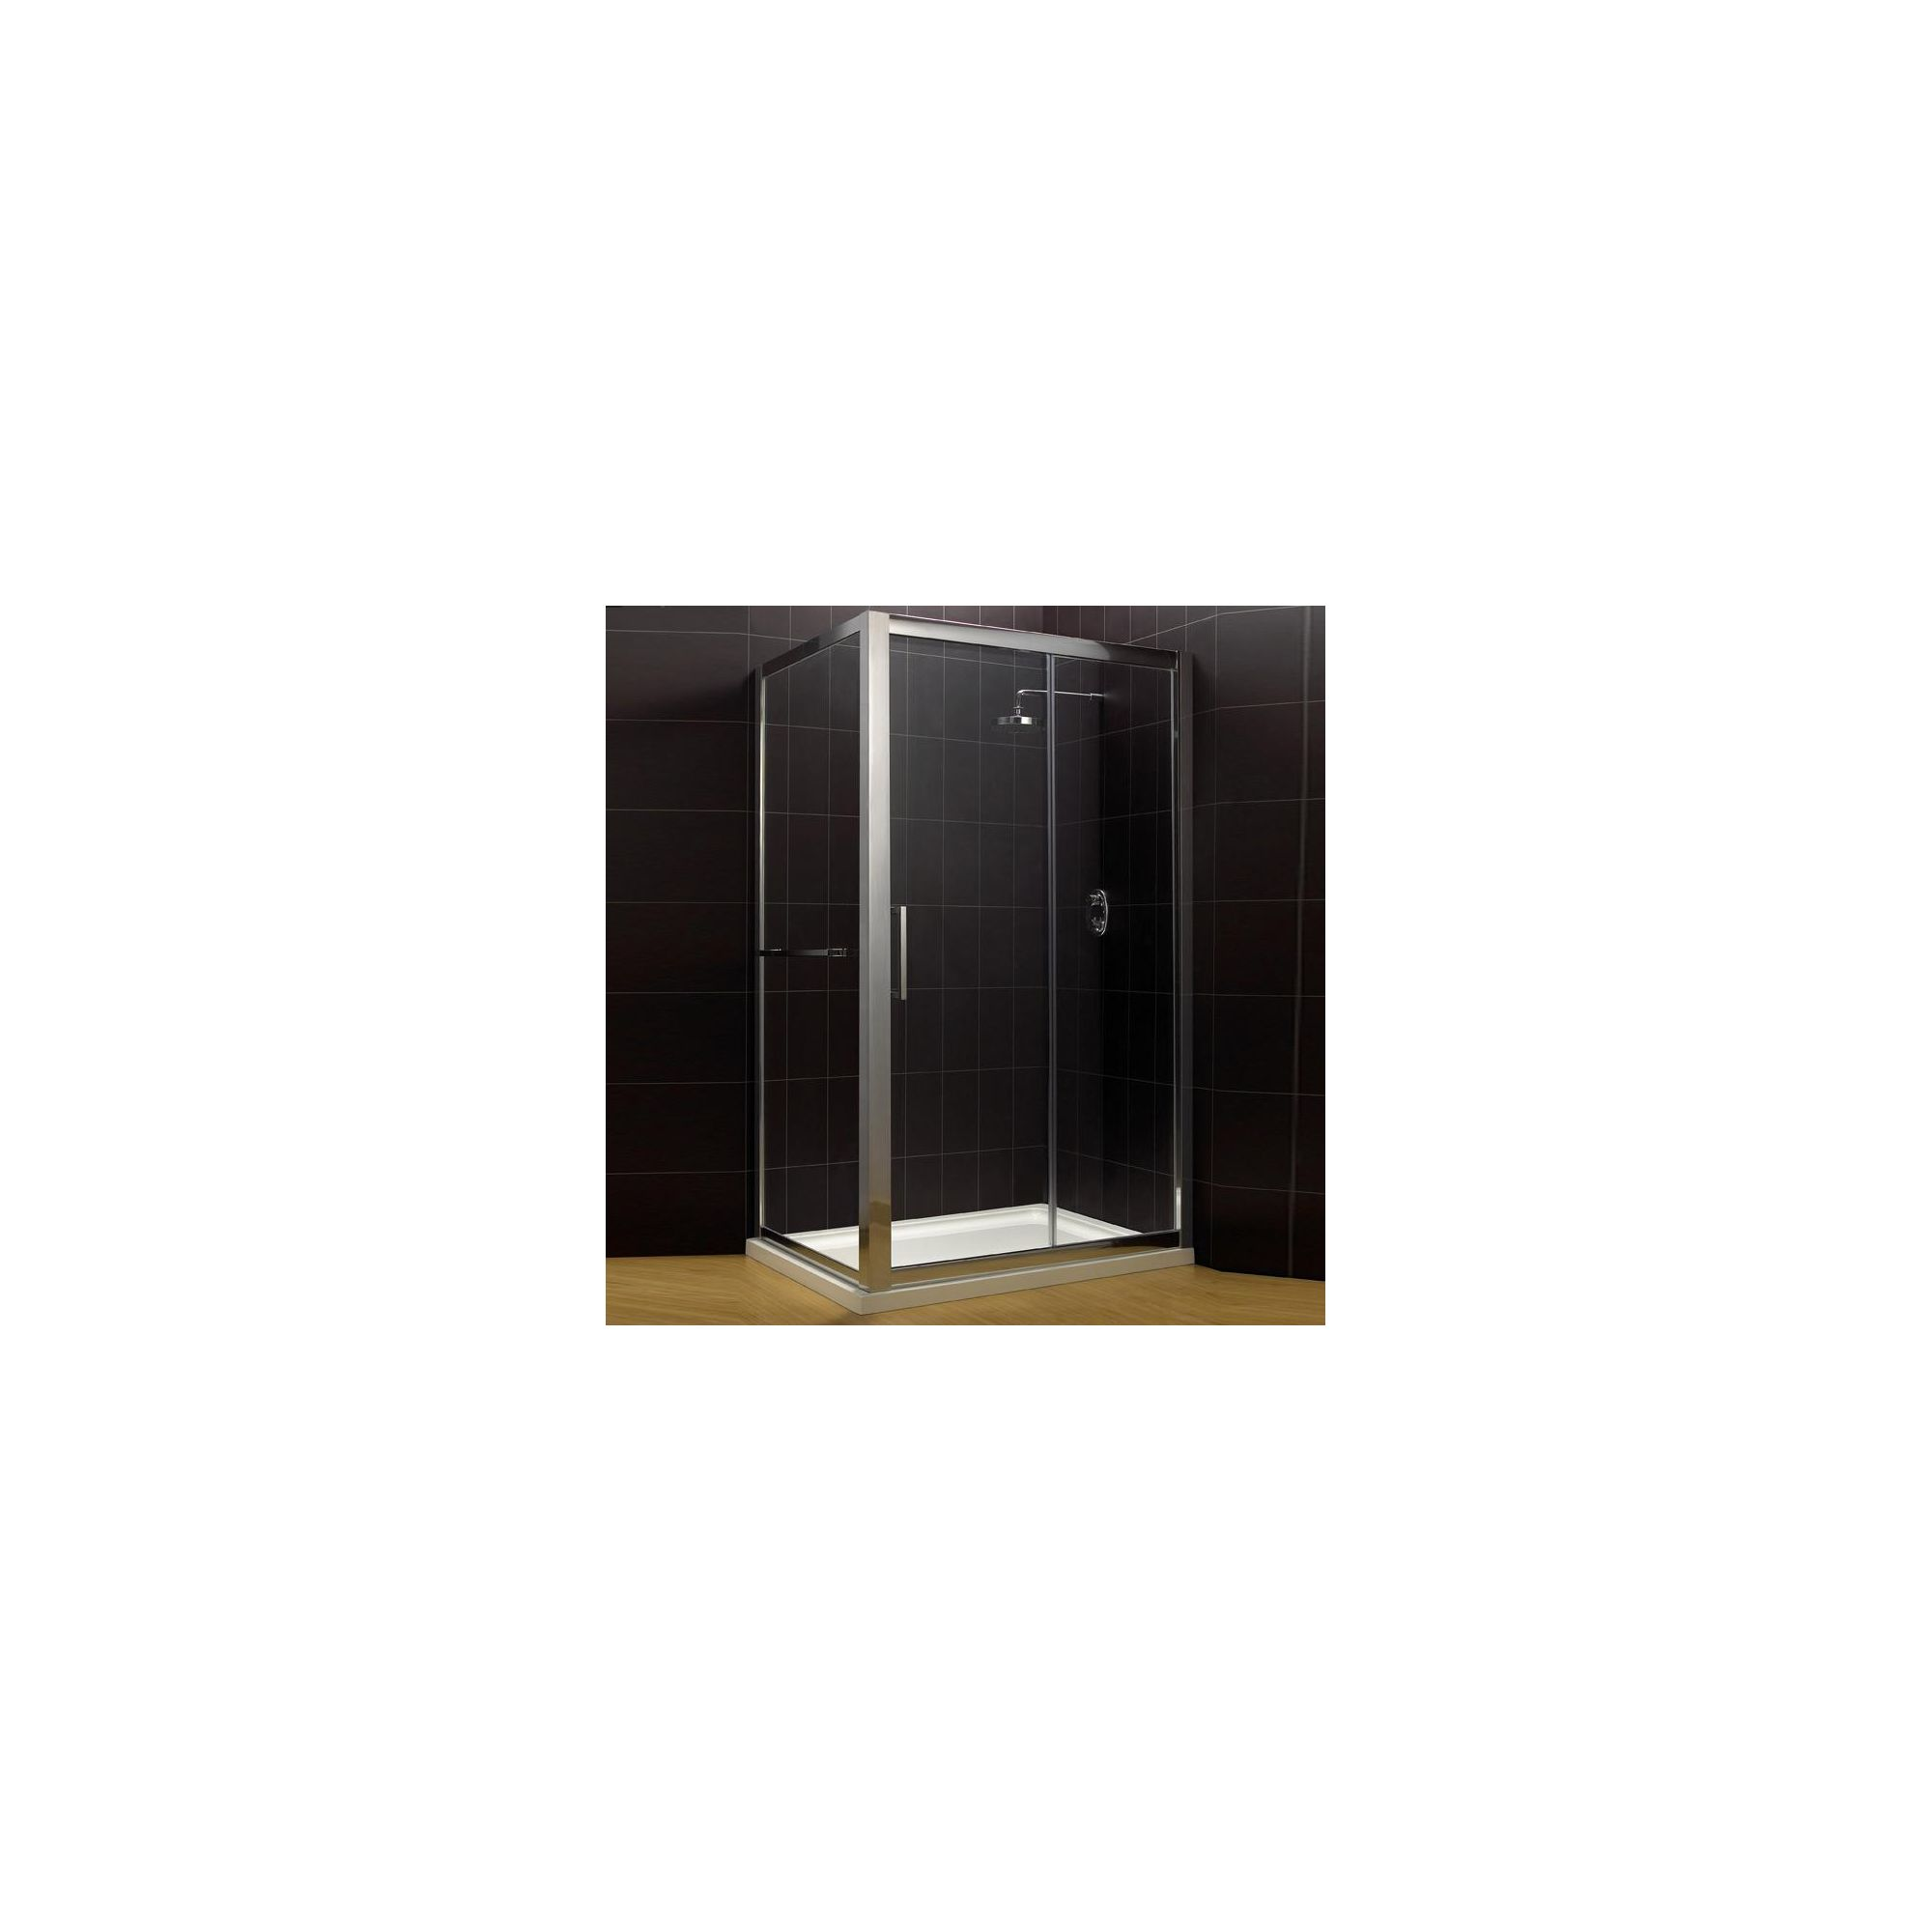 Duchy Supreme Silver Sliding Door Shower Enclosure with Towel Rail, 1700mm x 700mm, Standard Tray, 8mm Glass at Tescos Direct